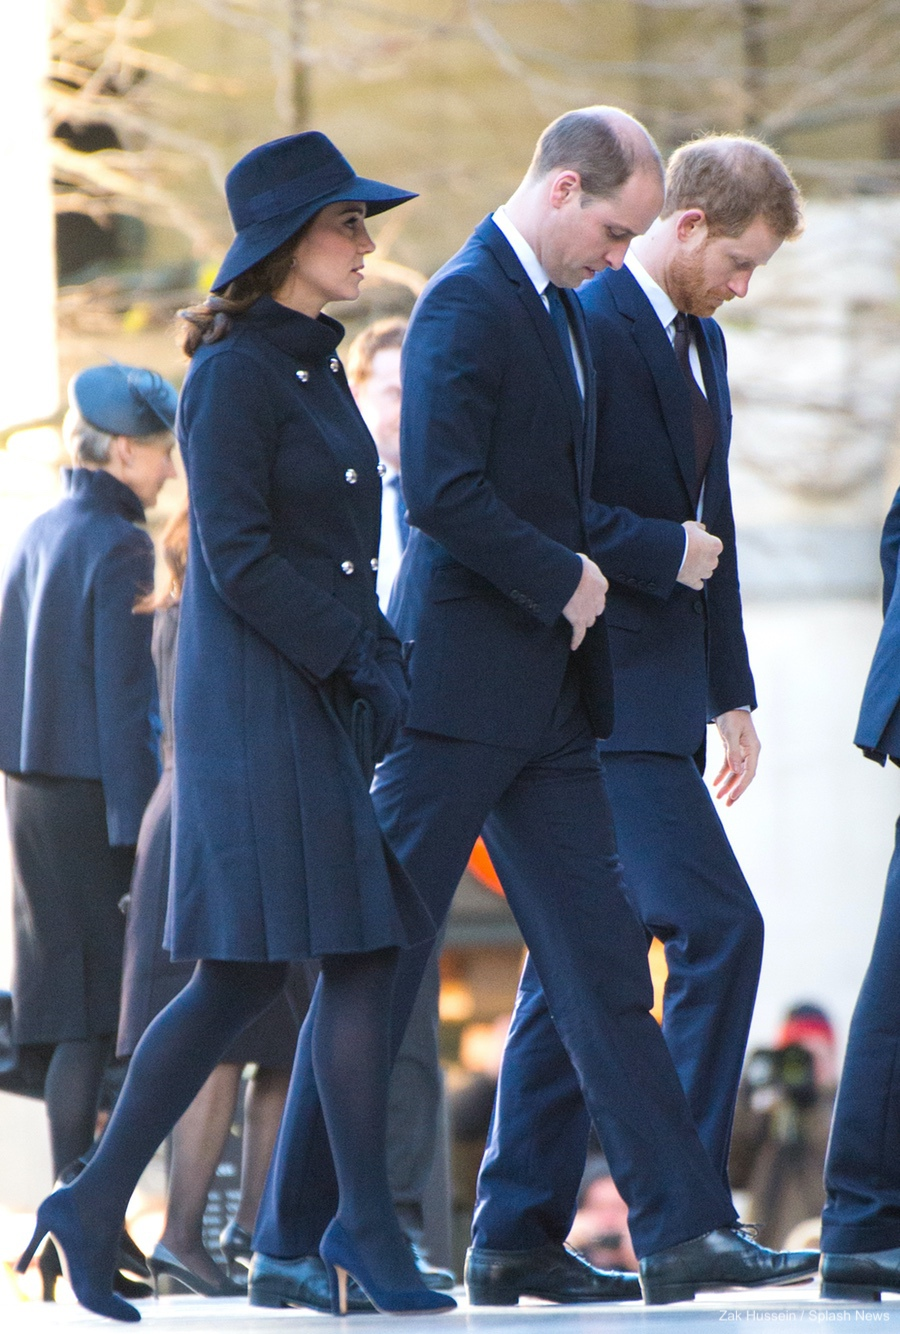 Kate Middleton wearing the Jimmy Choo Georgia pumps in 2017 during the Grenfell Tower Fire National Memorial Service